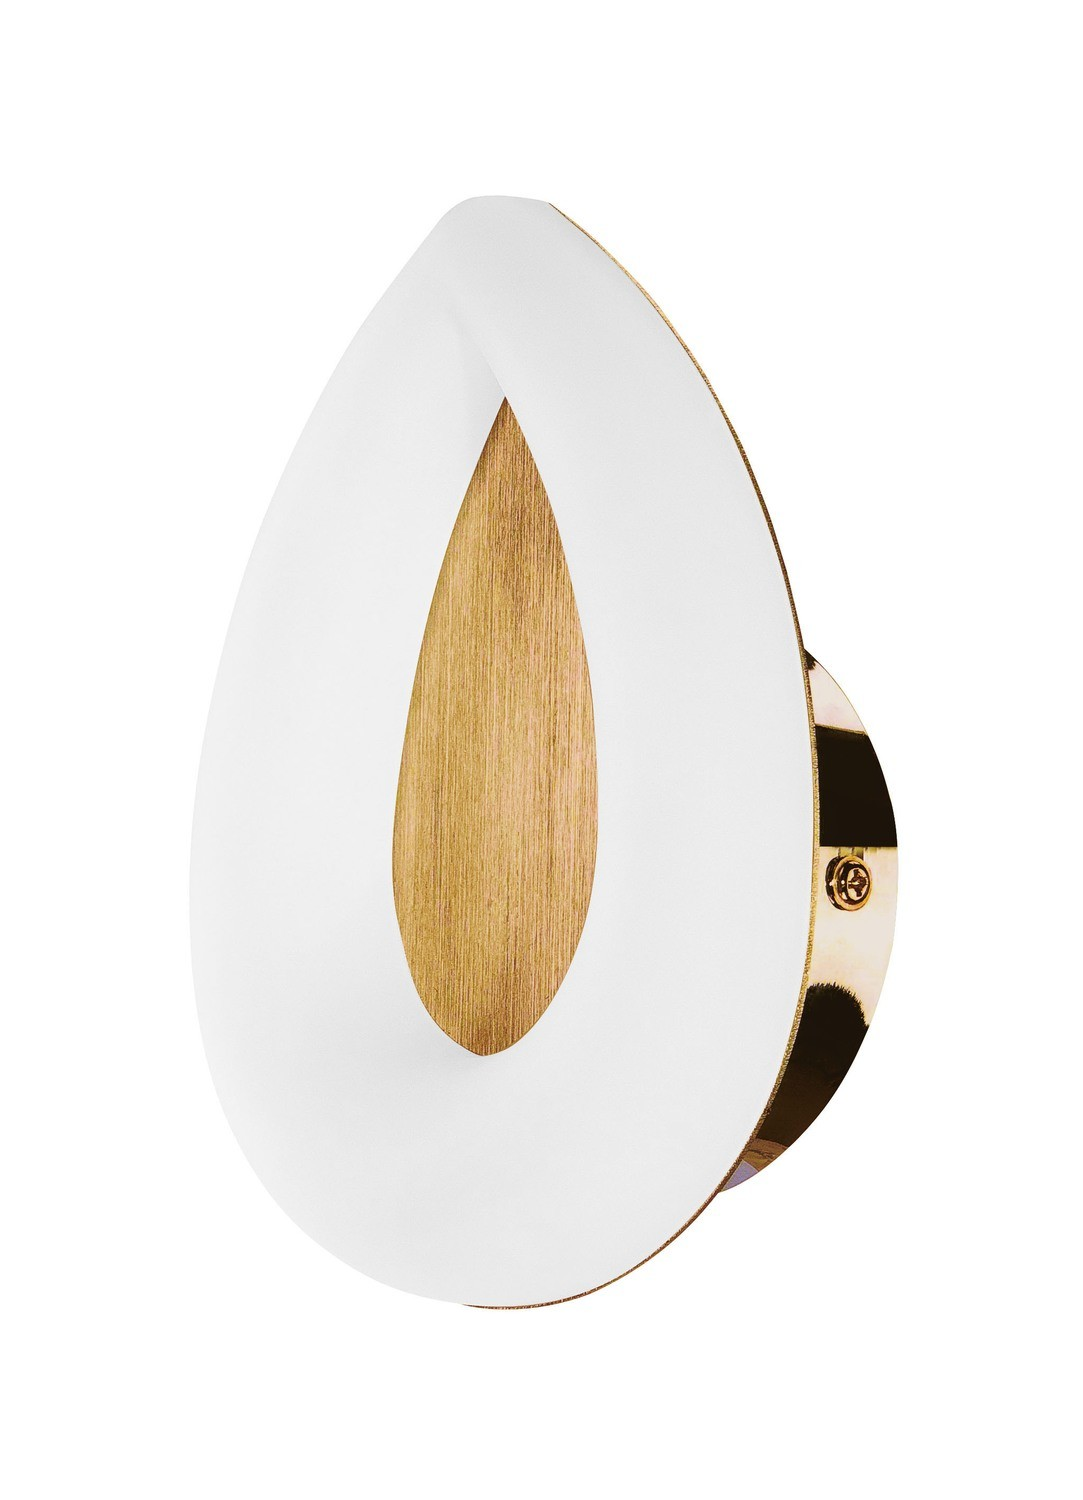 Juno Wall Lamp 5W LED 3000K, 450lm, Satin Gold/Frosted Acrylic/Gold, 3yrs Warranty